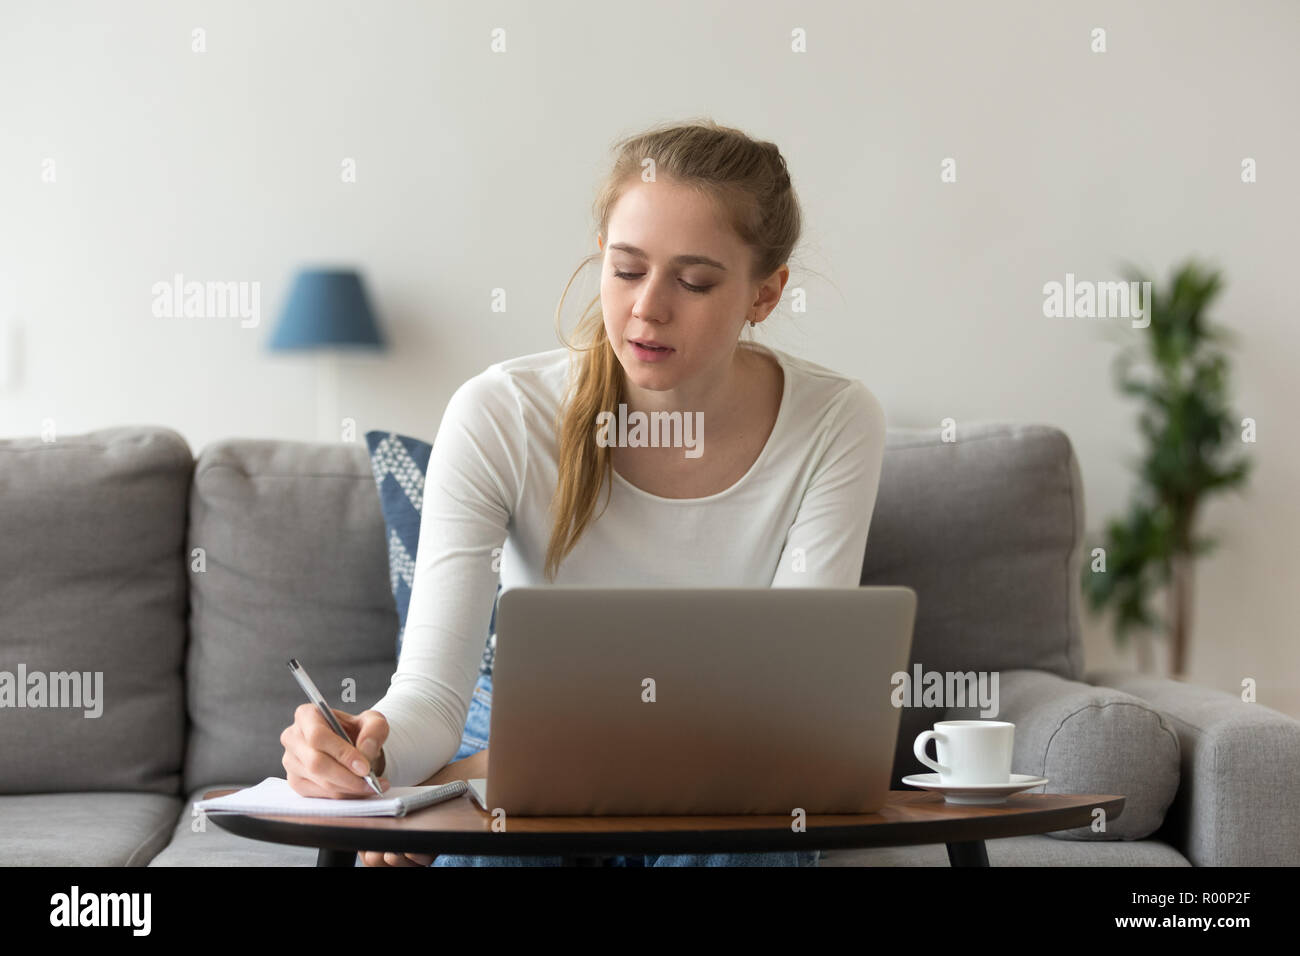 Woman studying learning or working at home - Stock Image